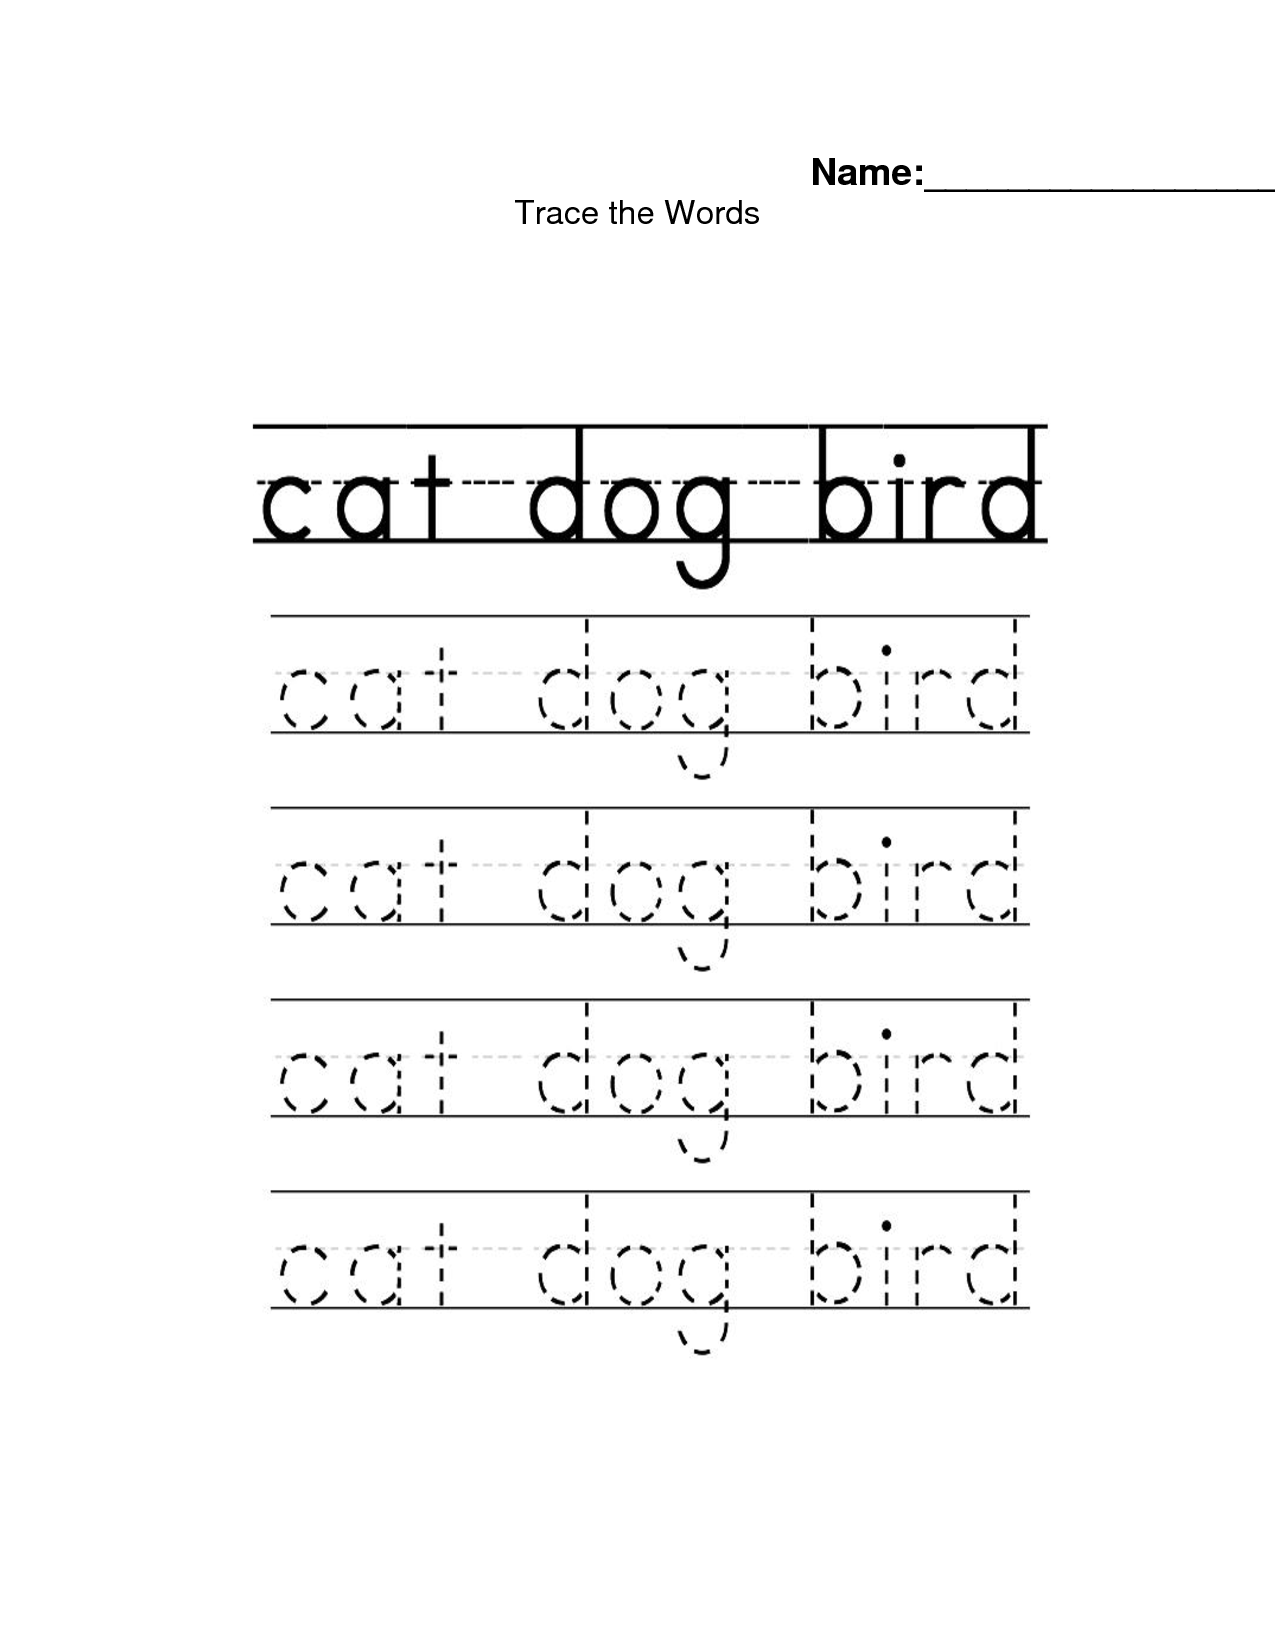 5 Images of Printable Sight Word Tracing Printables